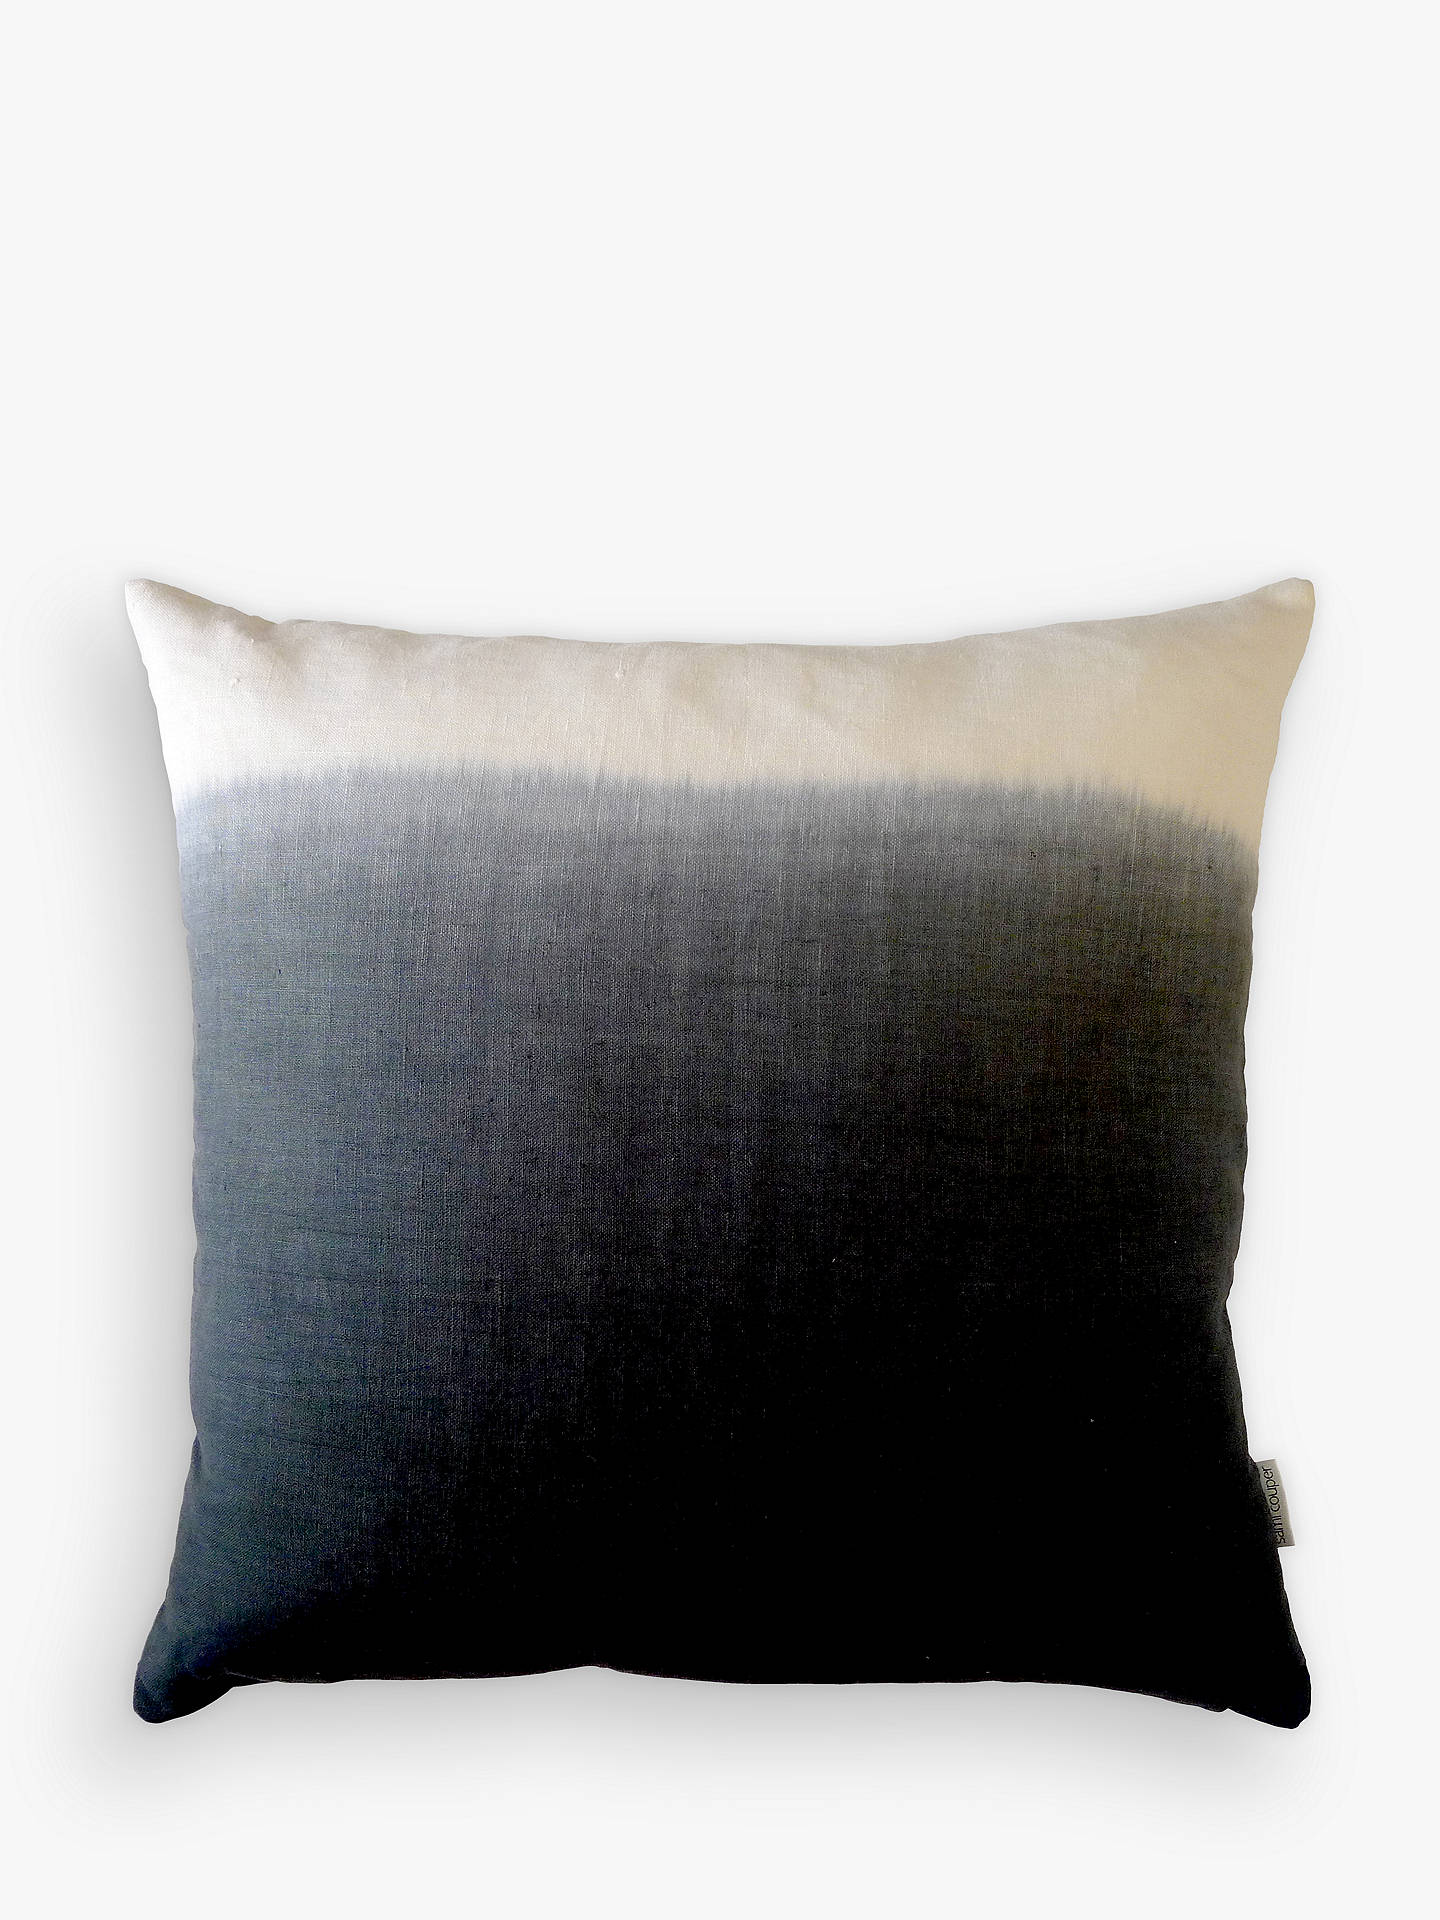 BuySami Couper Linen Ombre Large Cushion, Navy Online at johnlewis.com